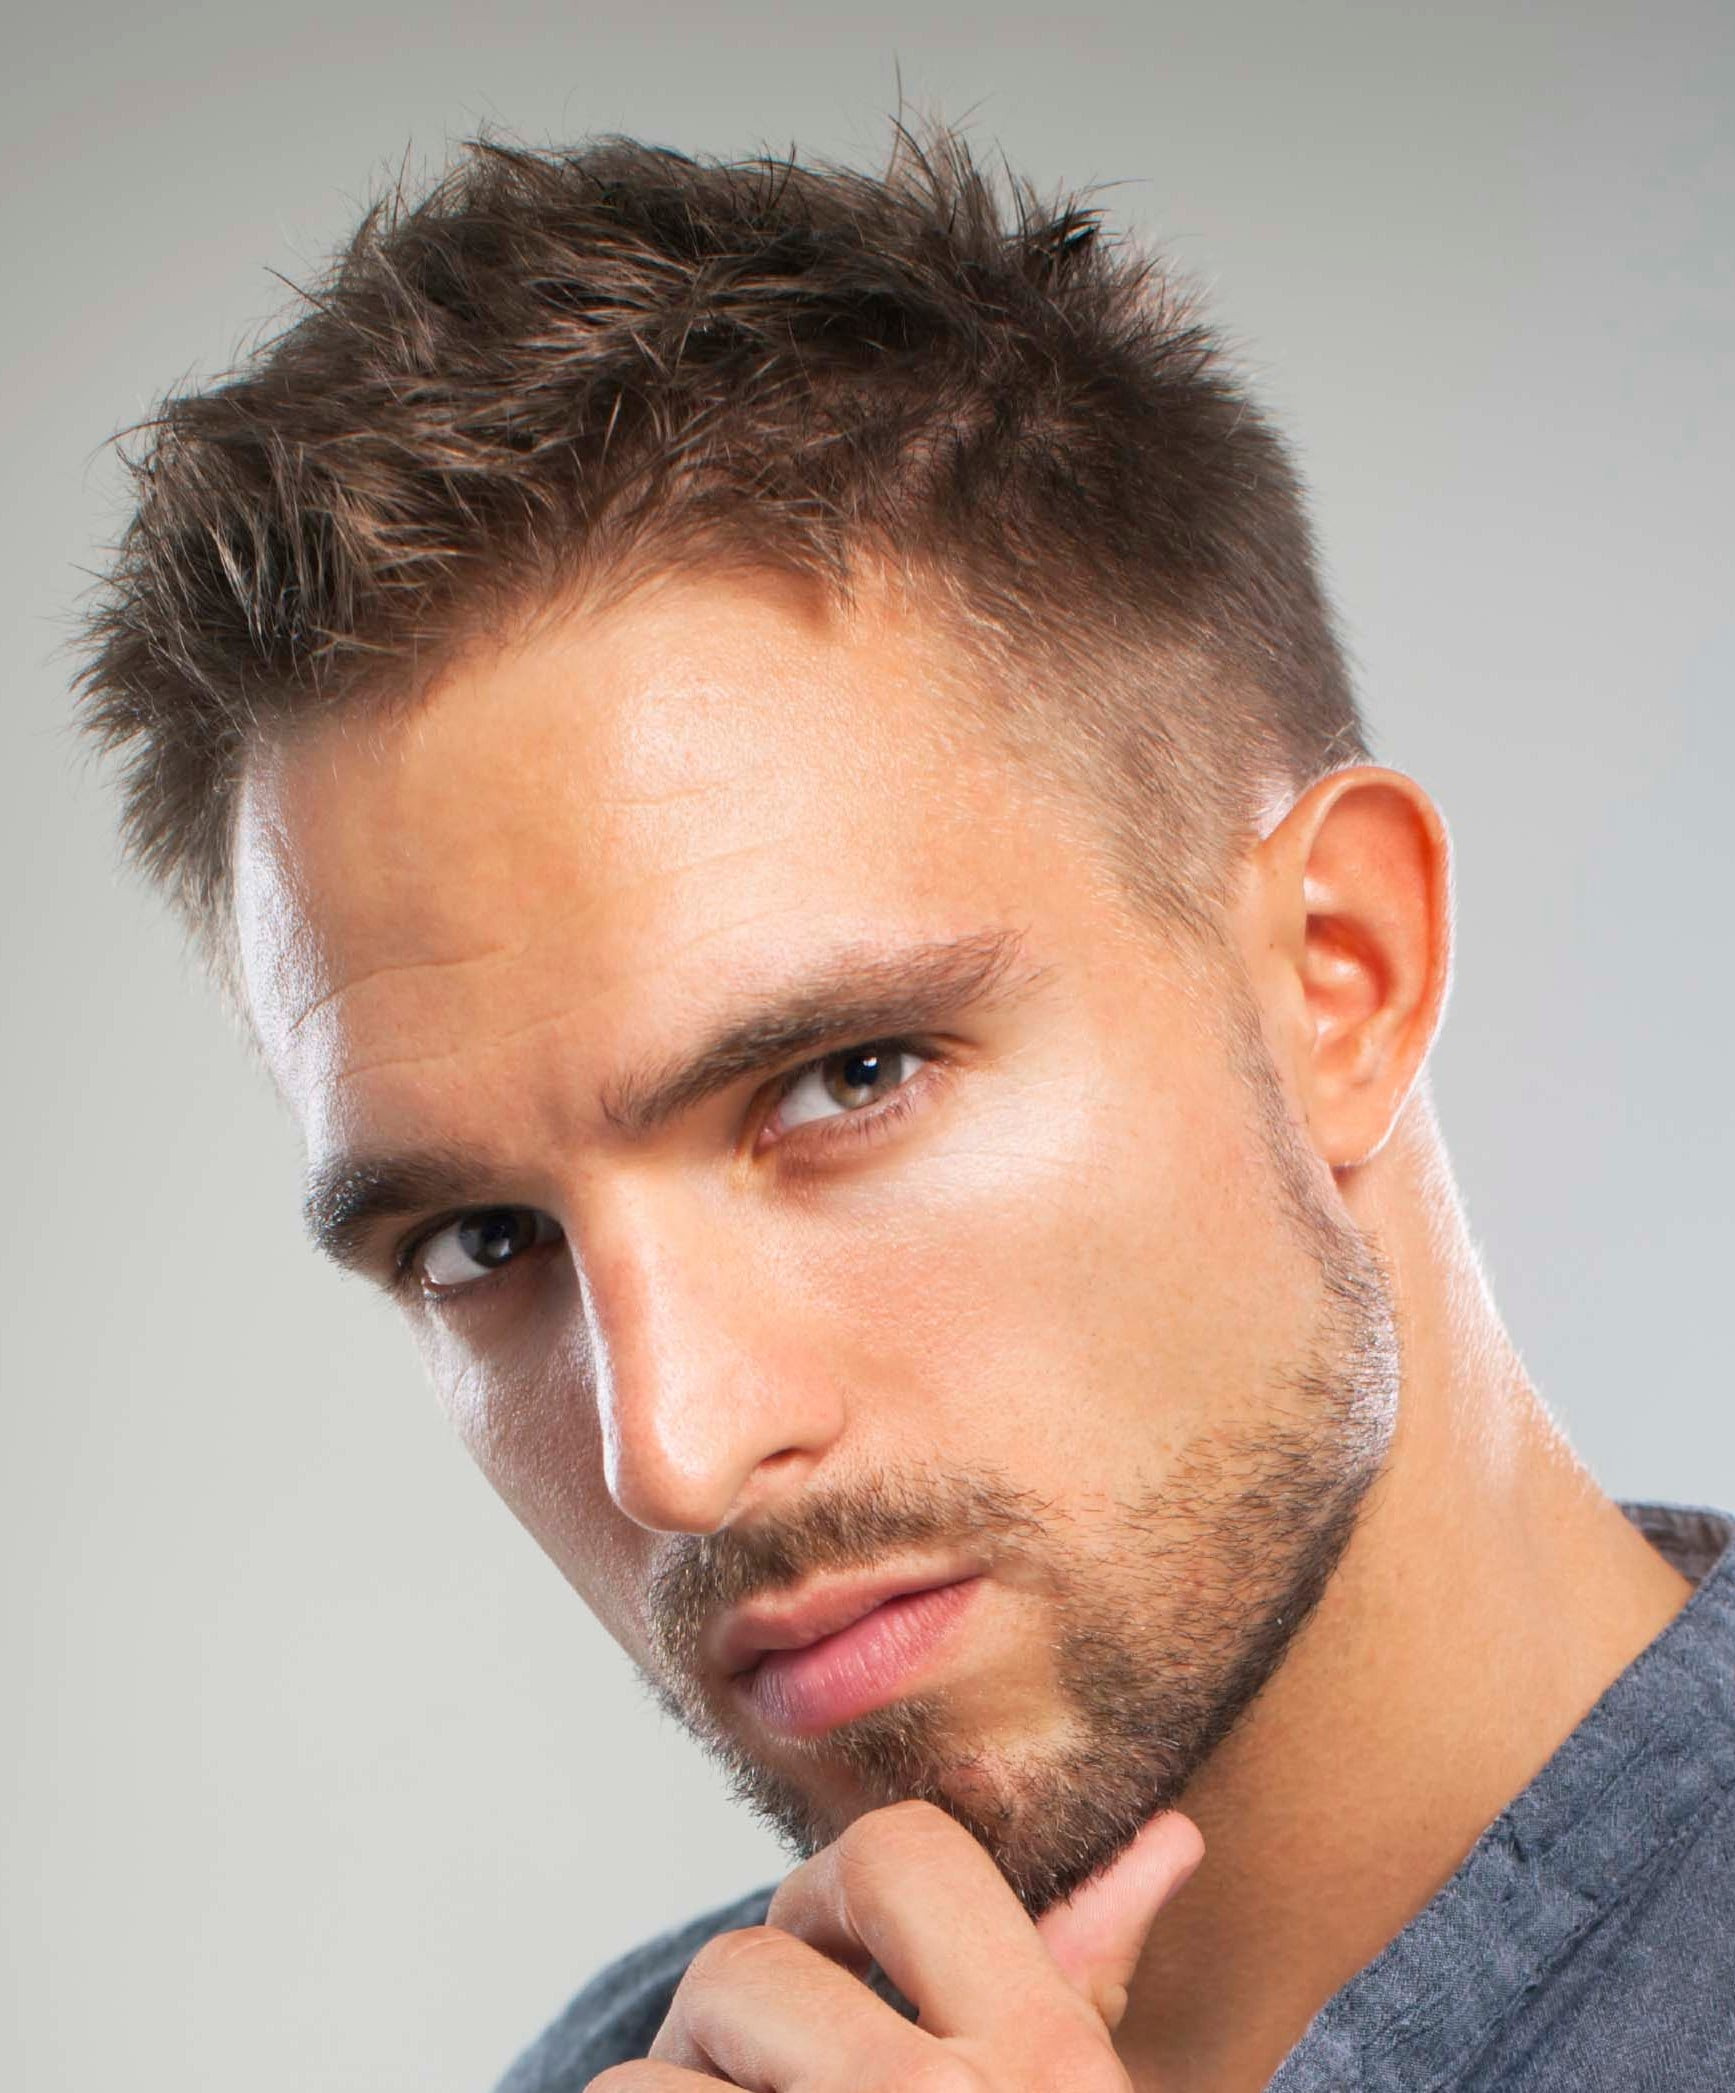 Best ideas about Best Haircuts For Thinning Hair Male . Save or Pin 5 the best hairstyles for men with thin hair Now.